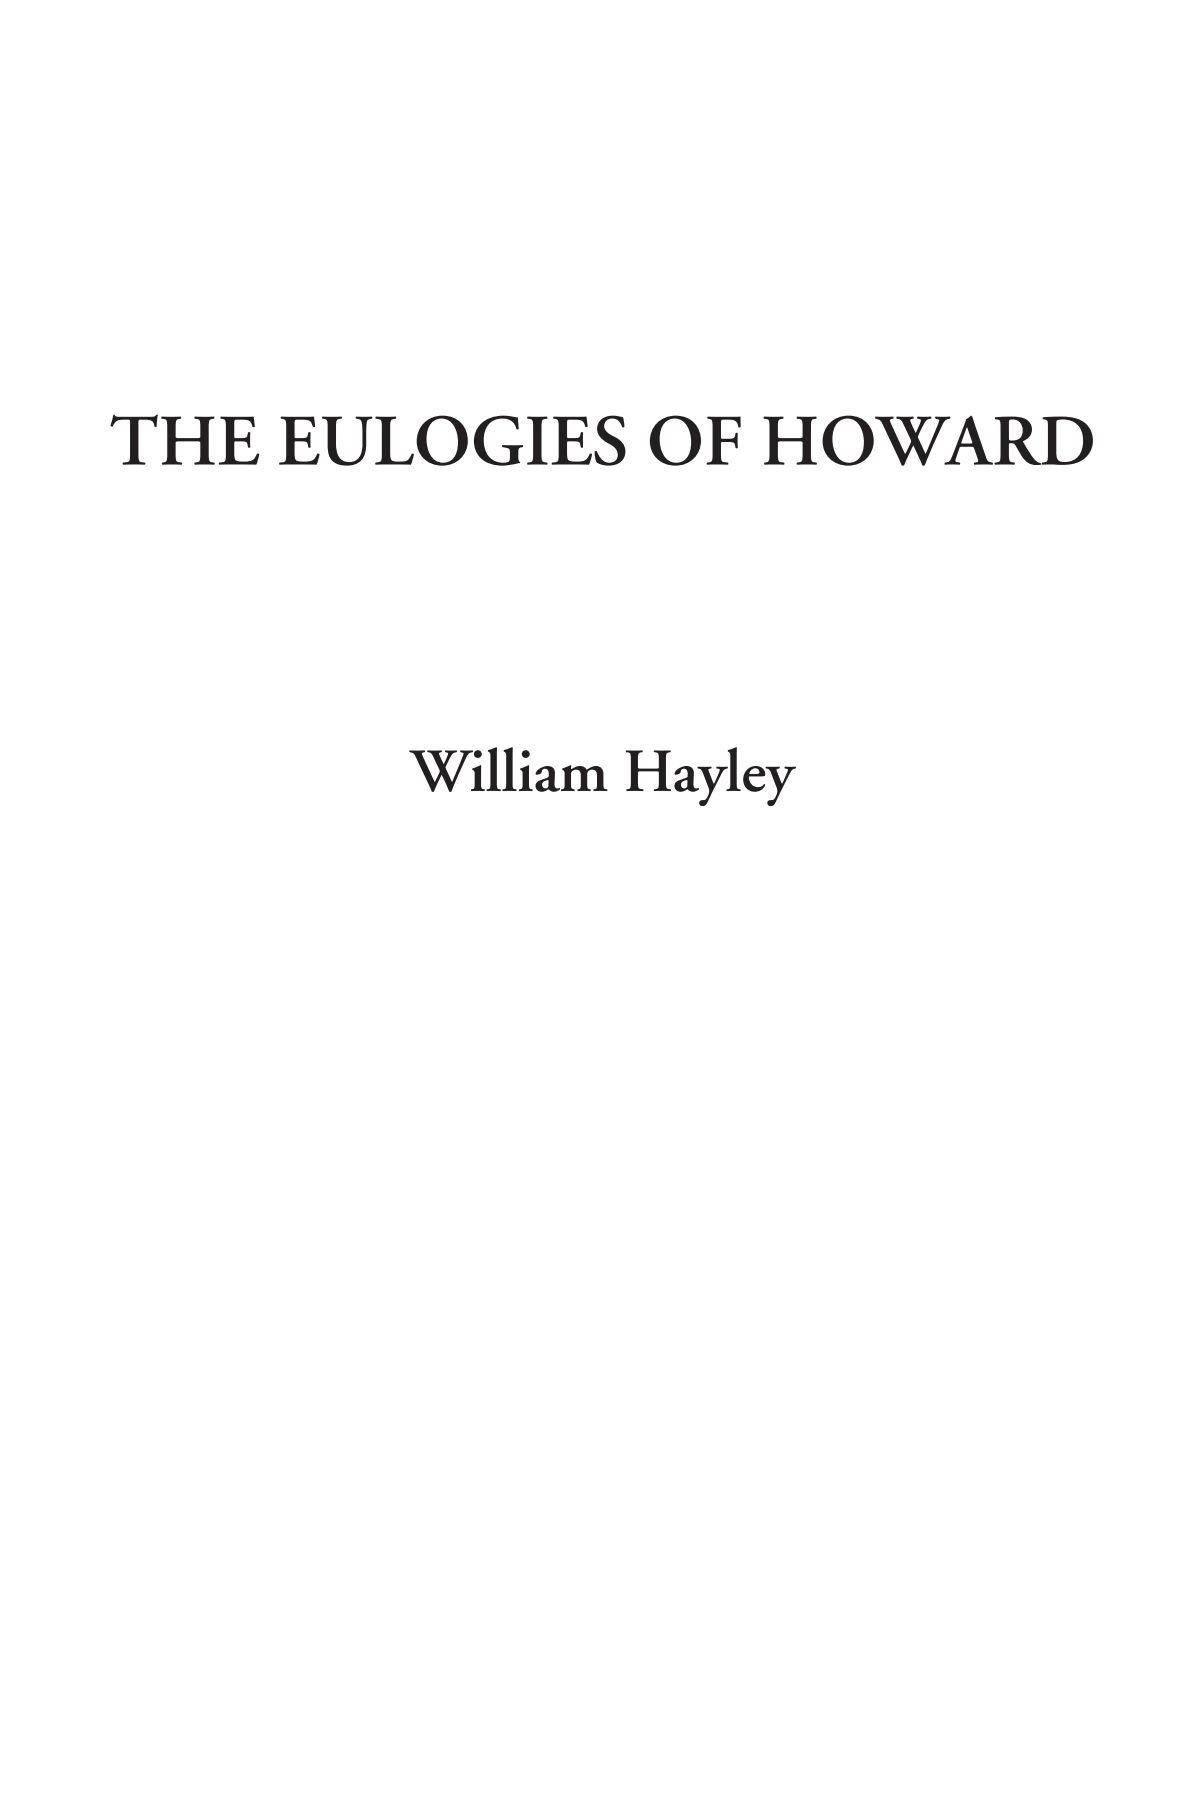 The Eulogies of Howard pdf